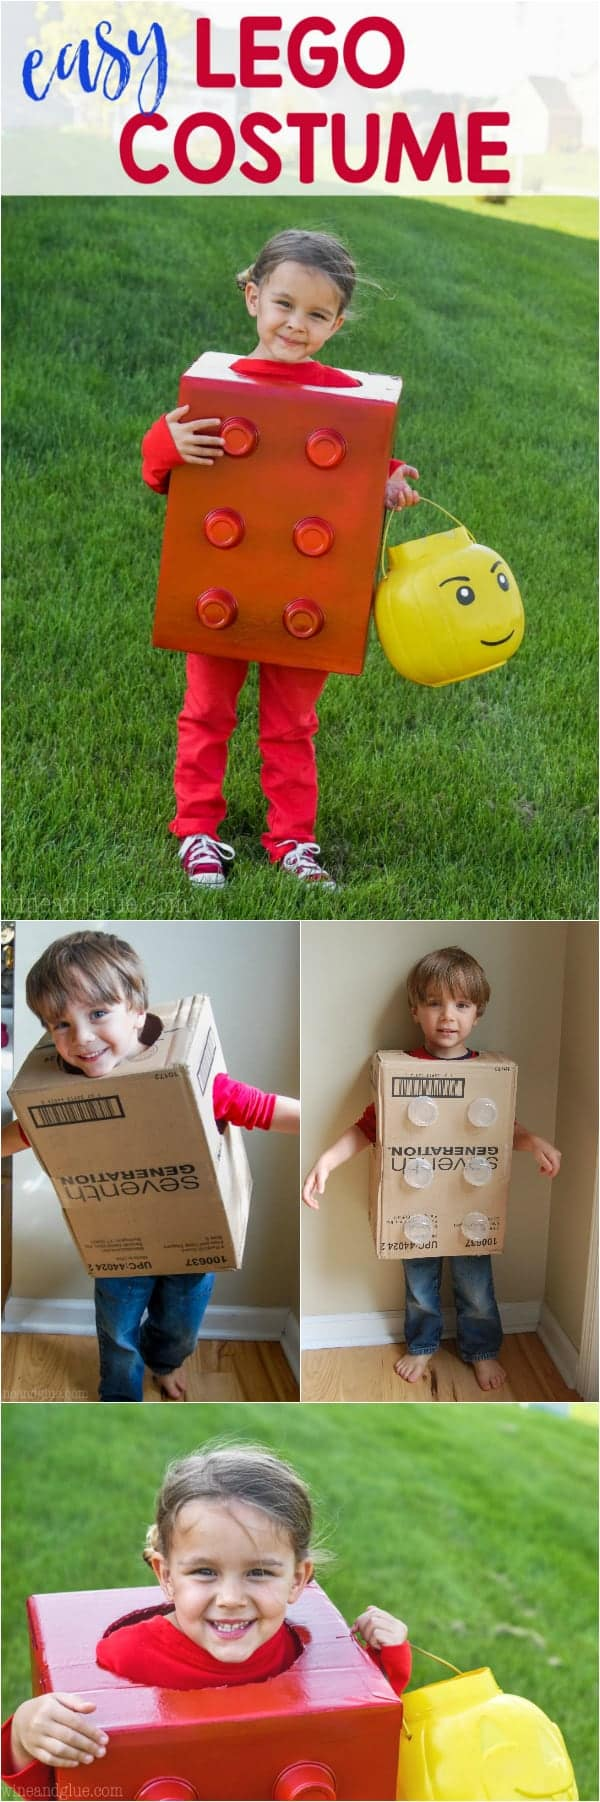 little girl wearing an easy halloween costume shaped as a lego